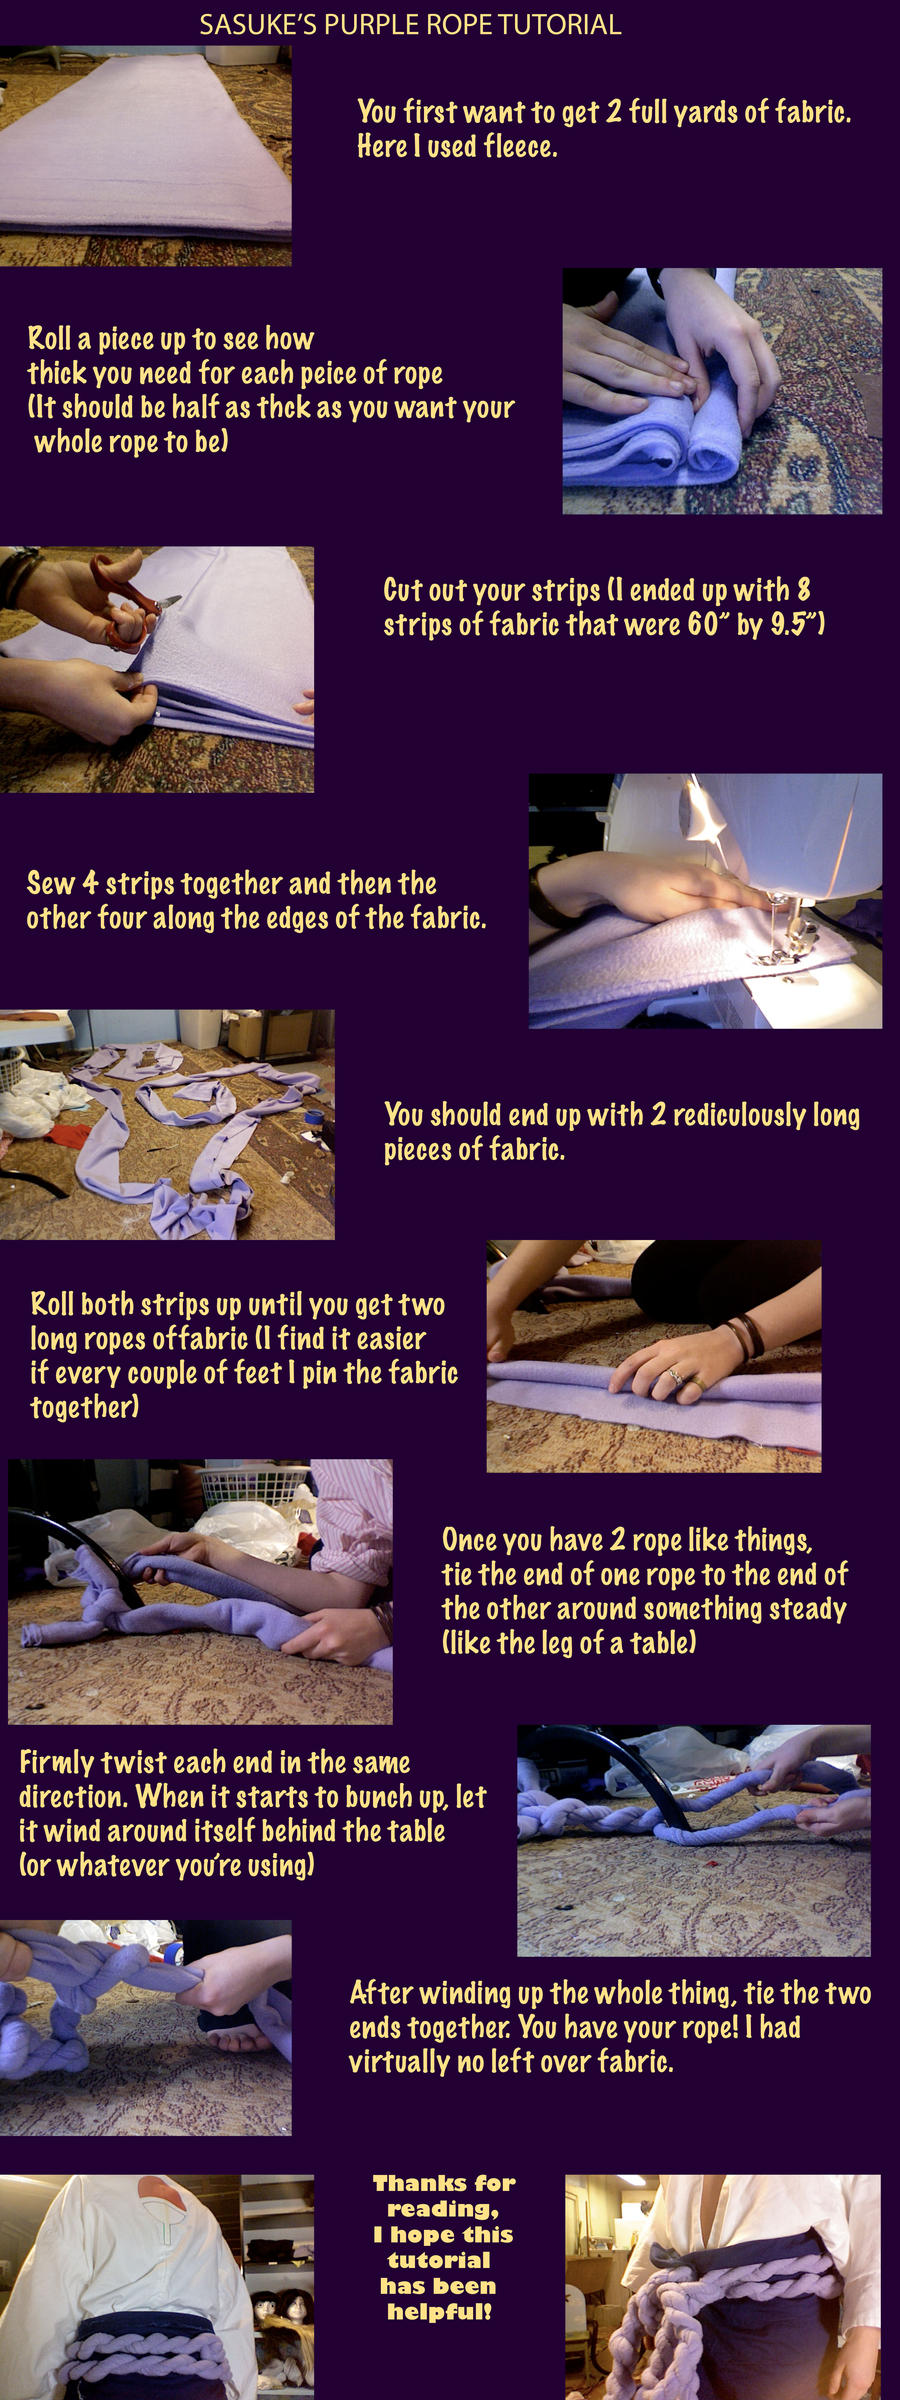 Sasuke Purple Rope Tutorial by Faxen